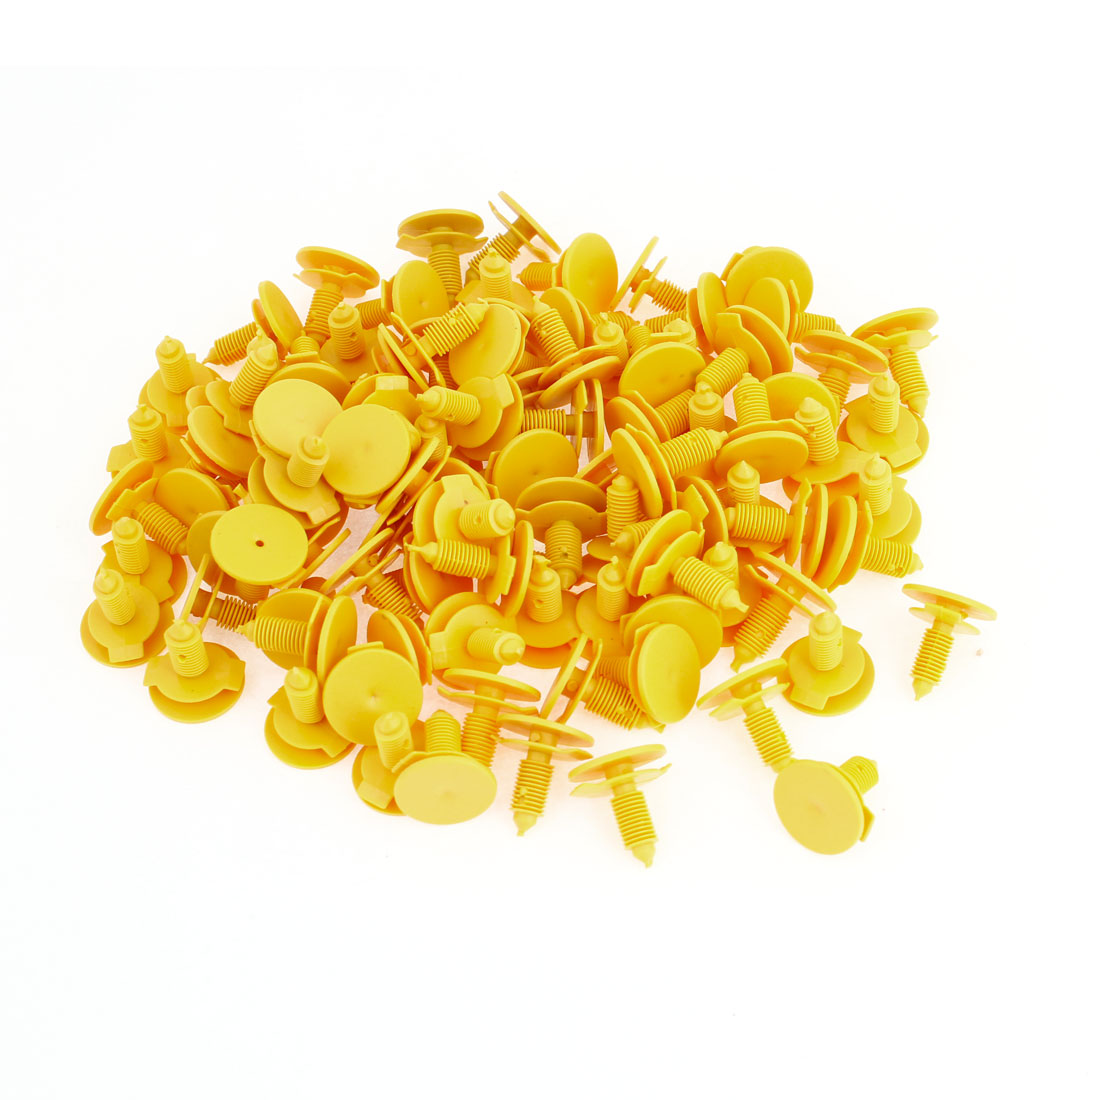 100pcs Vehicle Car 6.7mm Hole Yellow Door Fender Plastic Rivets Fasteners